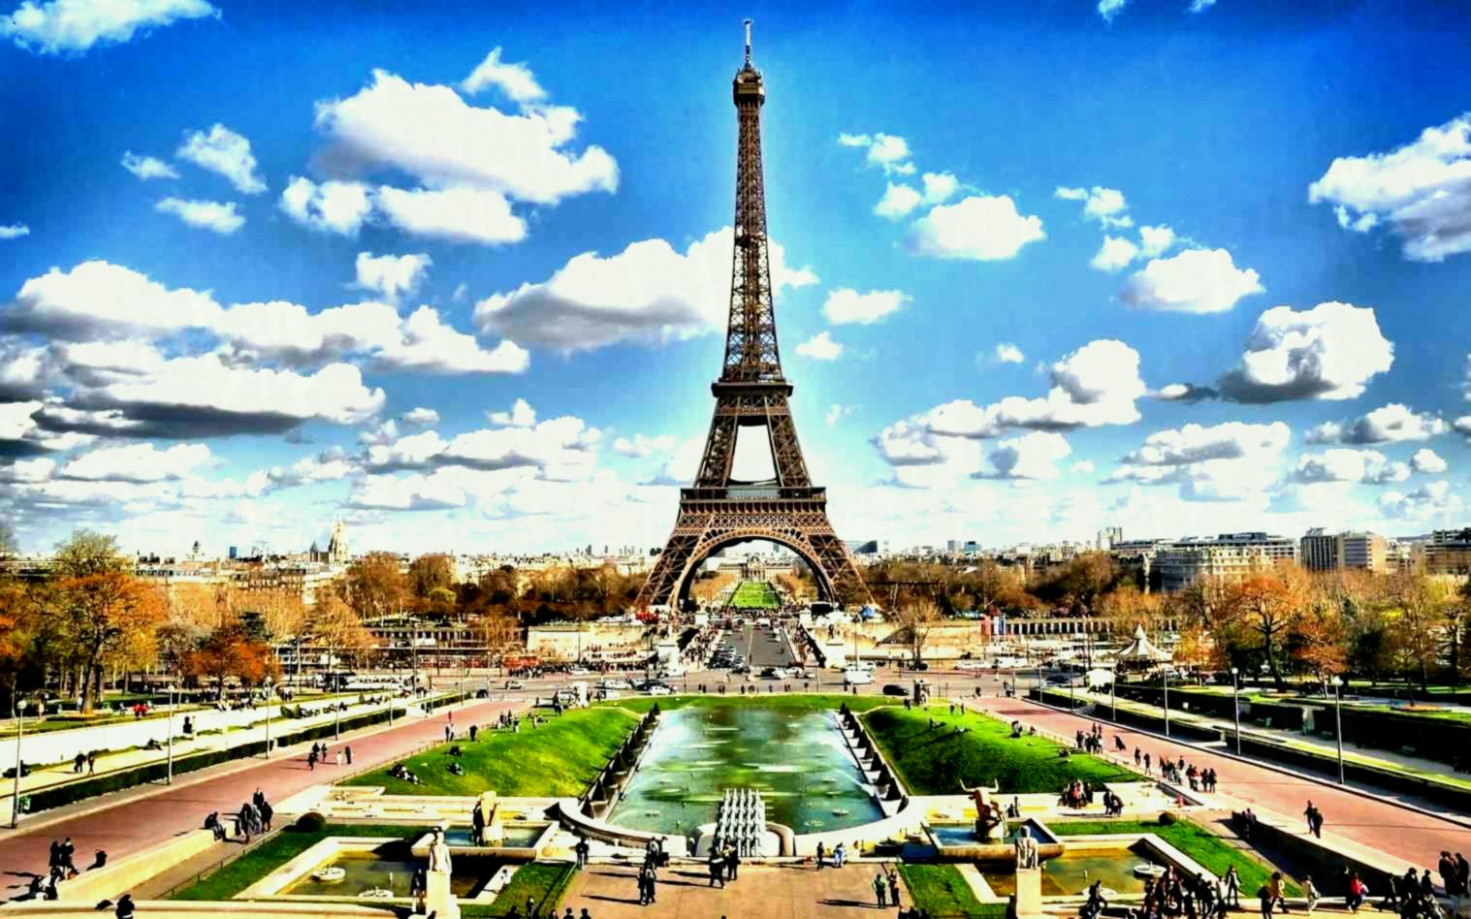 Eiffel Tower , HD Wallpaper & Backgrounds